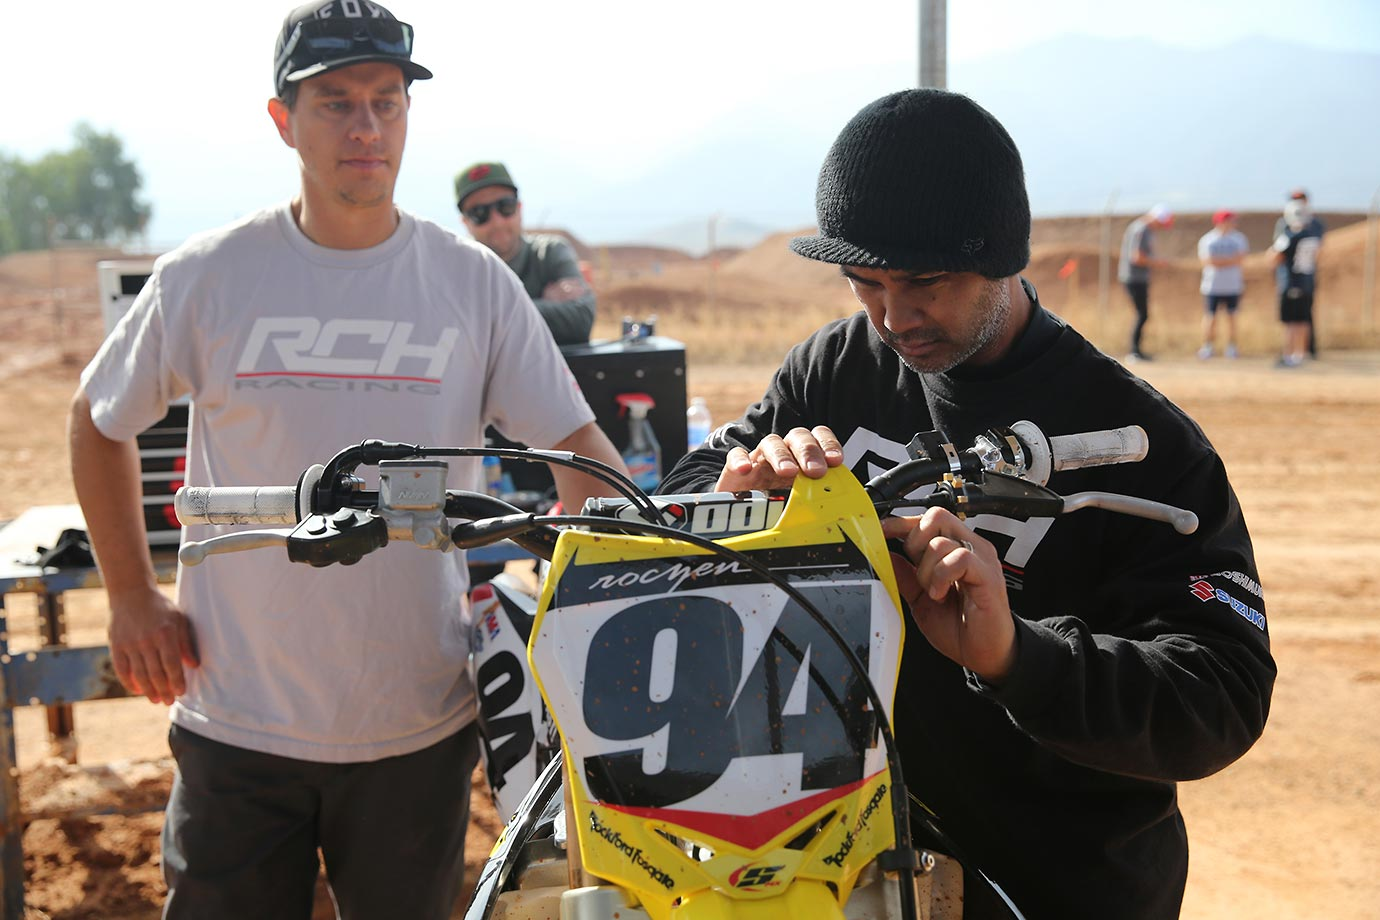 Ken Roczen's mechanics make some minor adjustments to his Suzuki bike during practice.